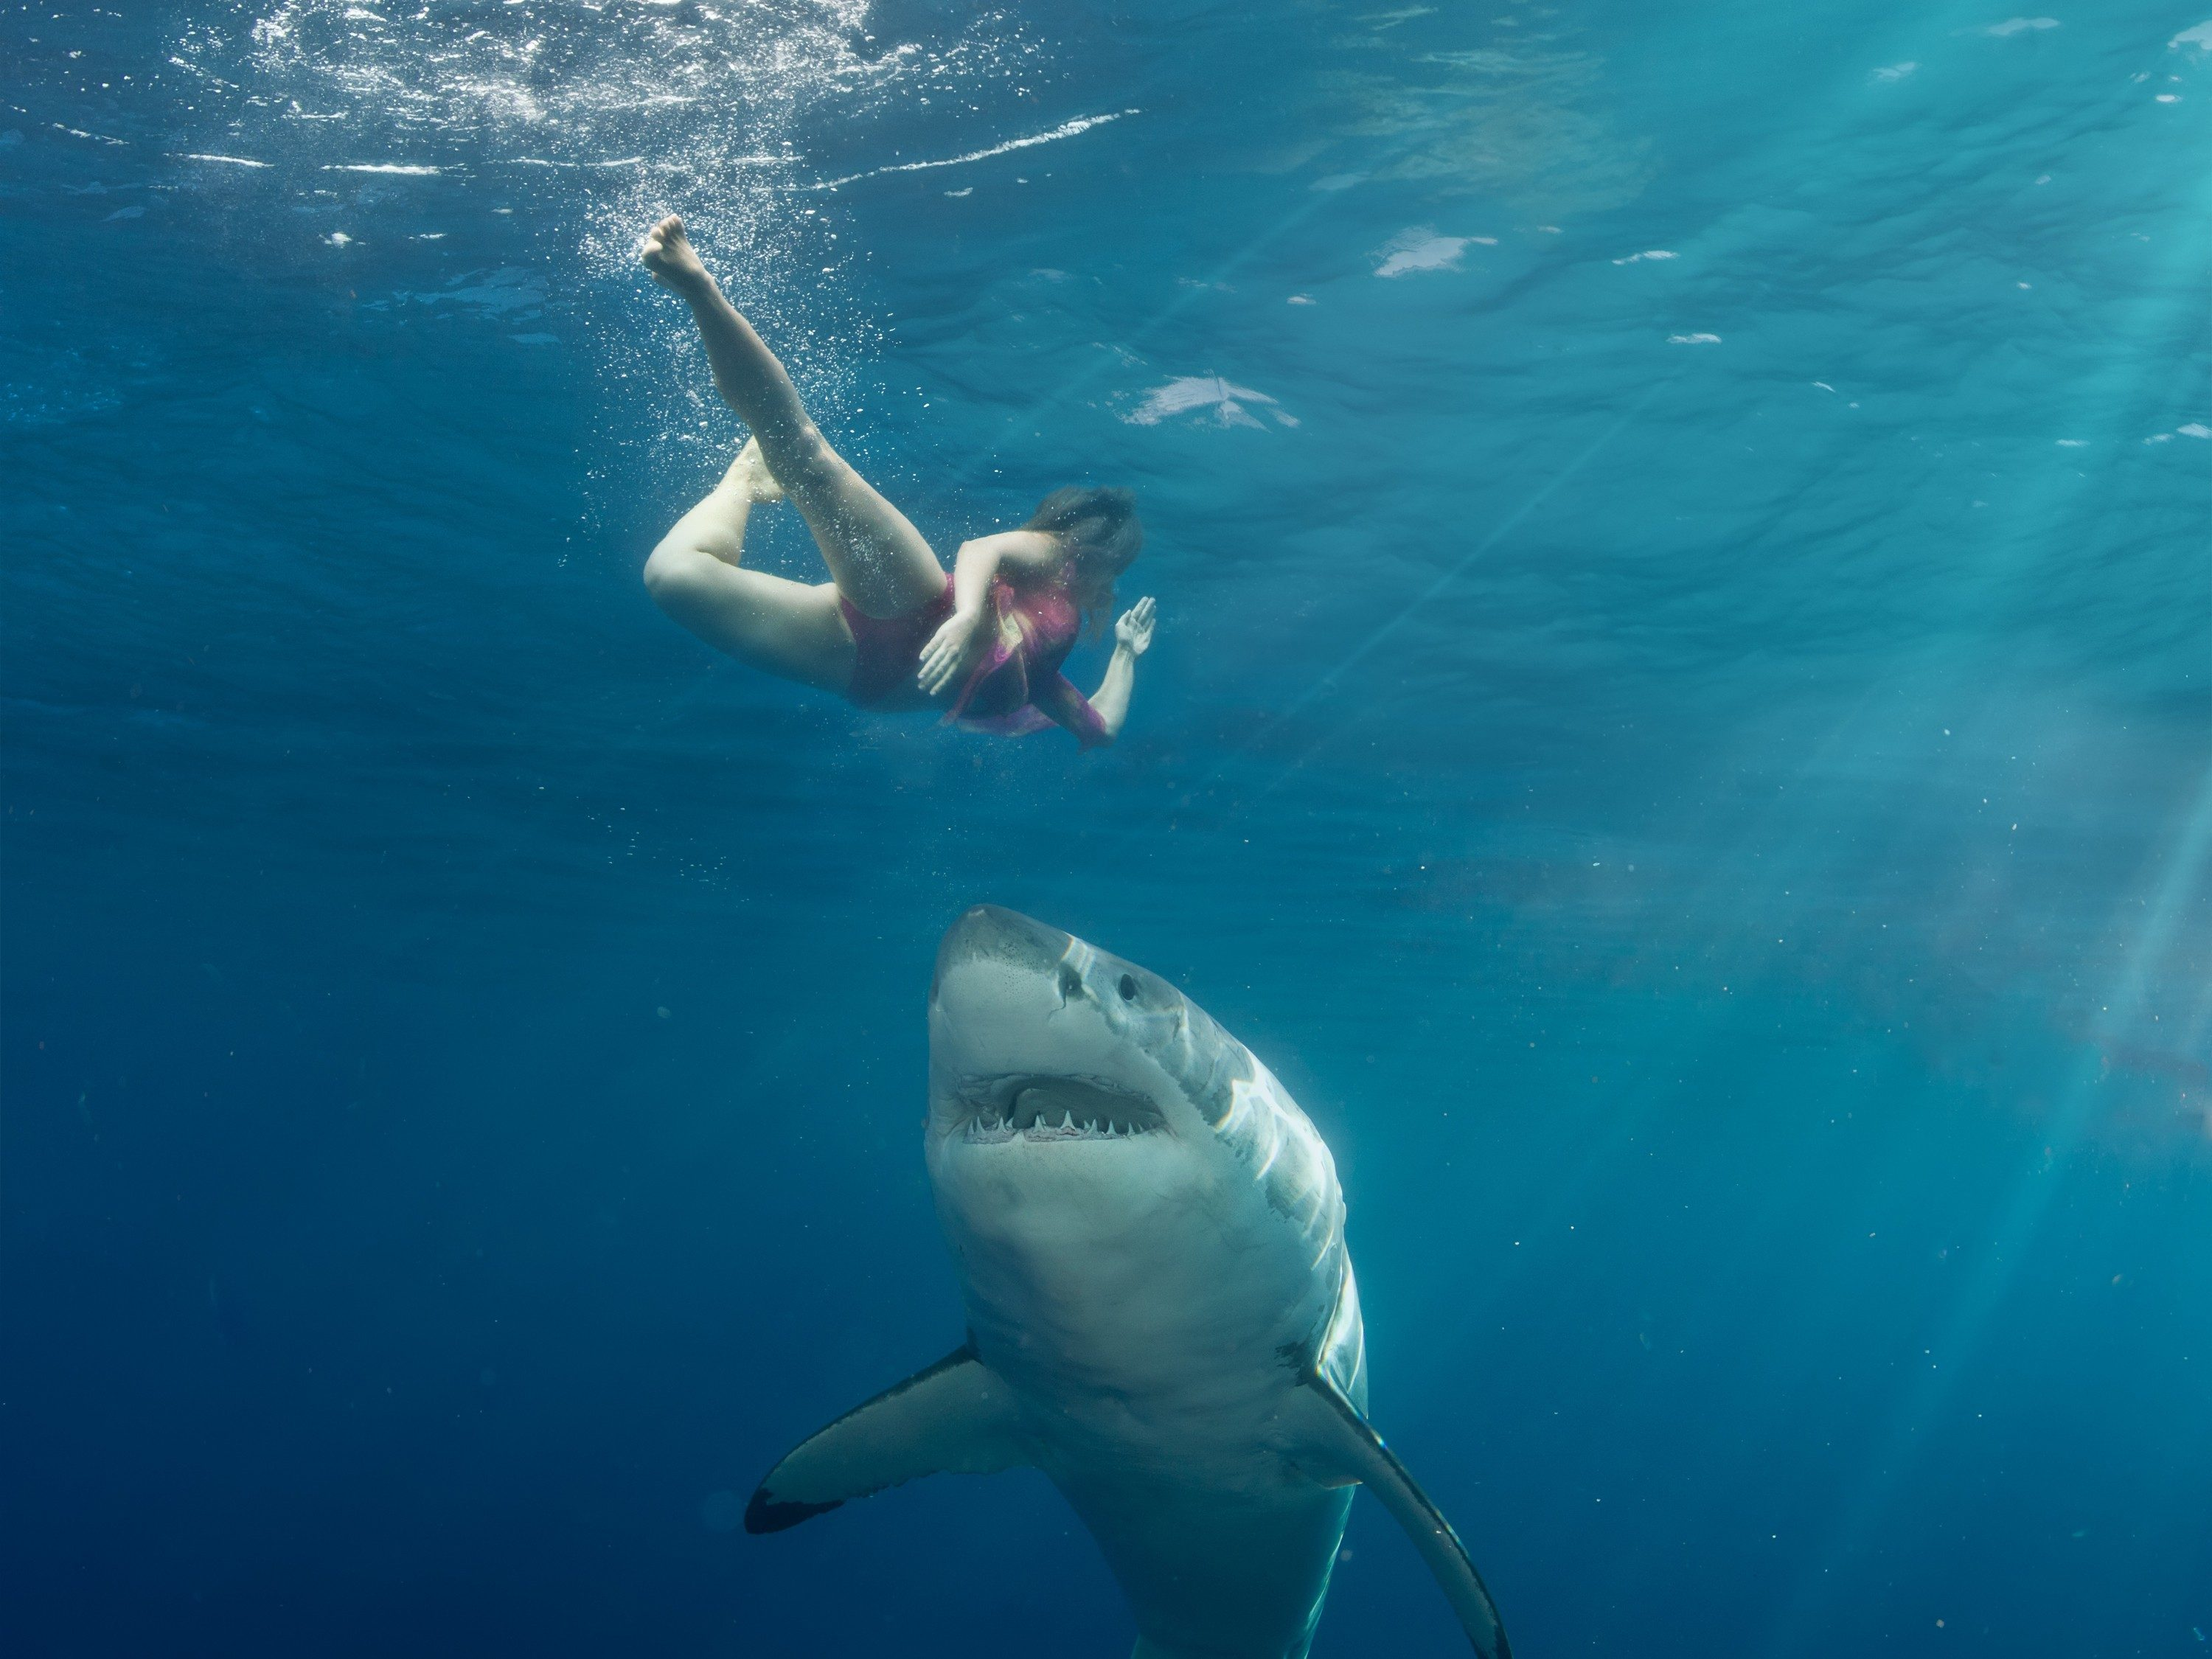 Shark Attacks Woman In Hawaii, Public Told To Stay Far Away - Travel Noire